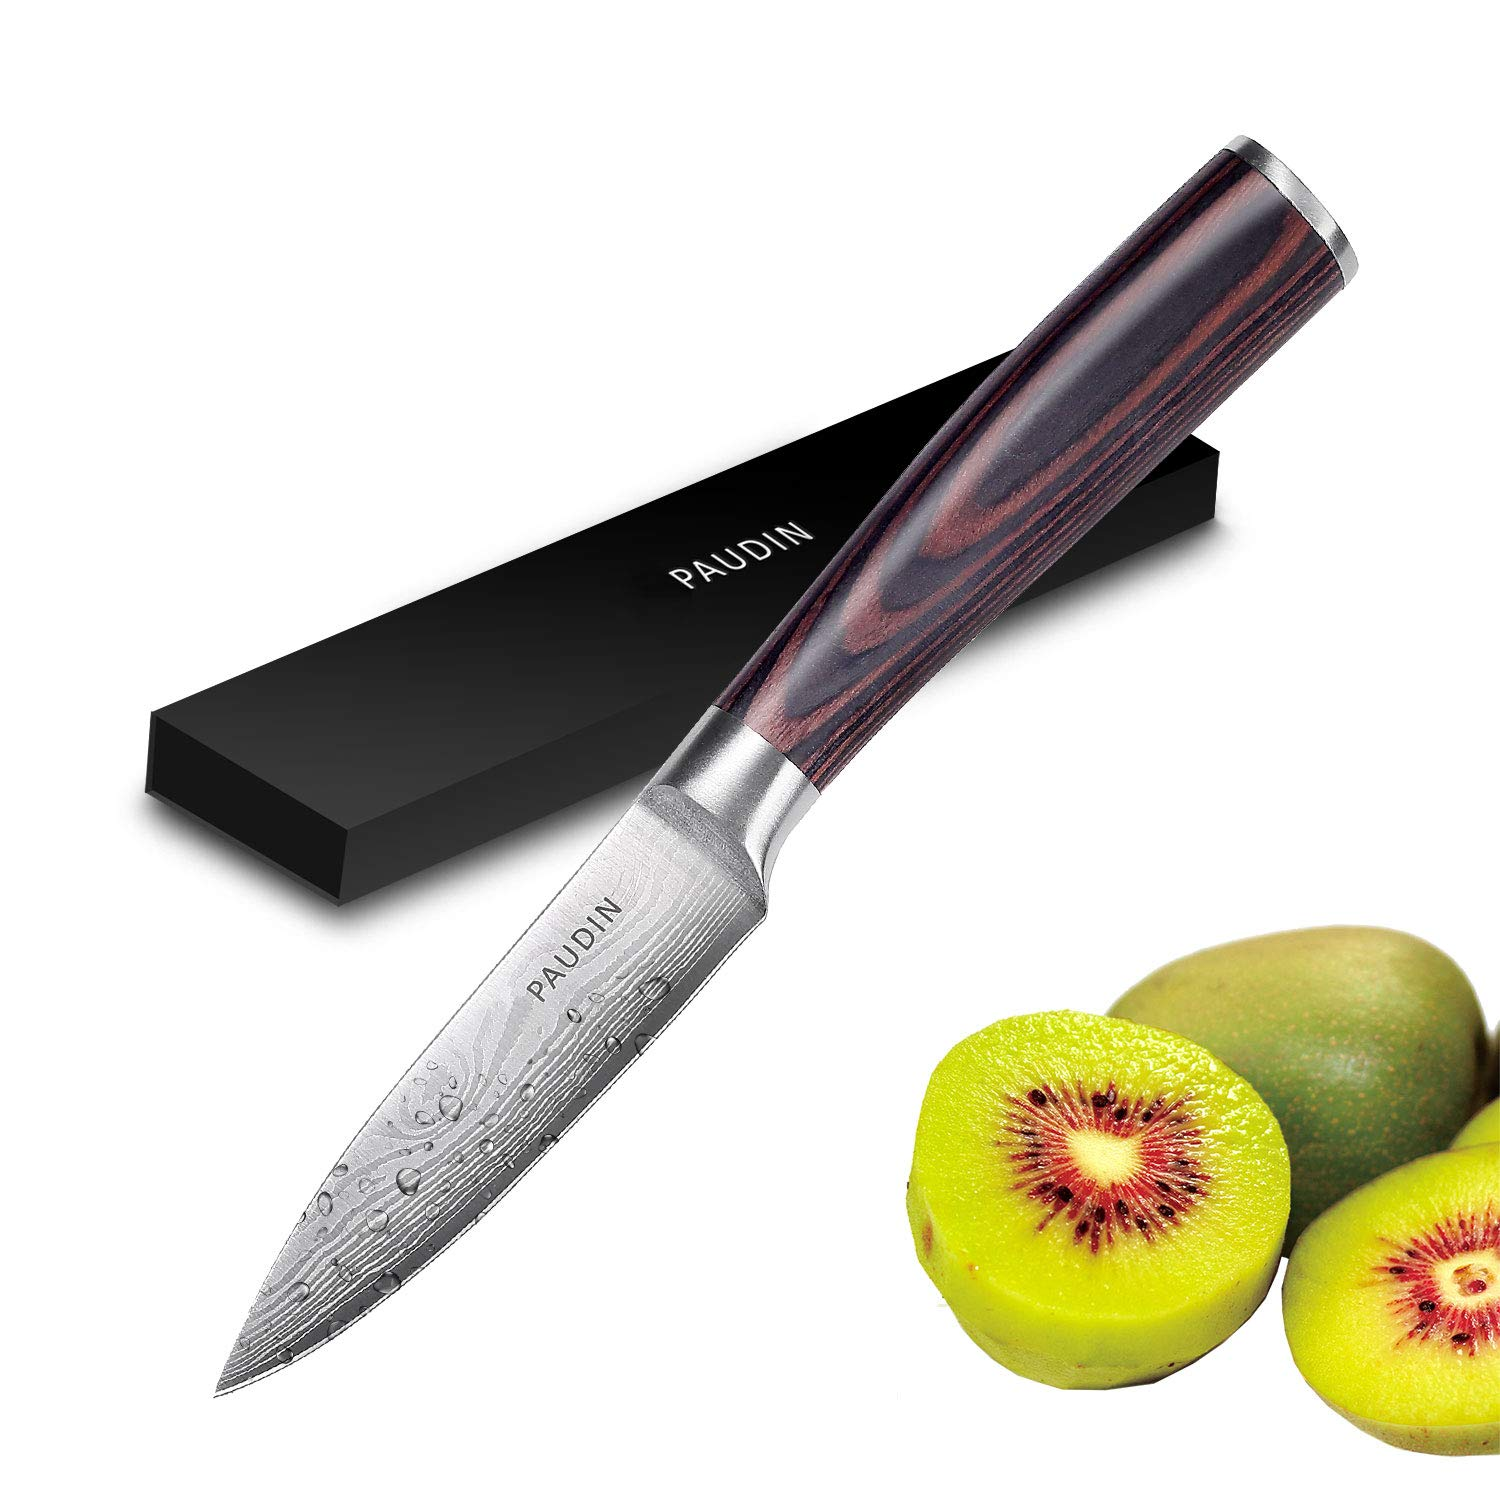 Paring Knife - PAUDIN 3.5 Inch Kitchen Knife N8 German High Carbon Stainless Steel Knife, Fruit and Vegetable Cutting Chopping Carving Knives by PAUDIN